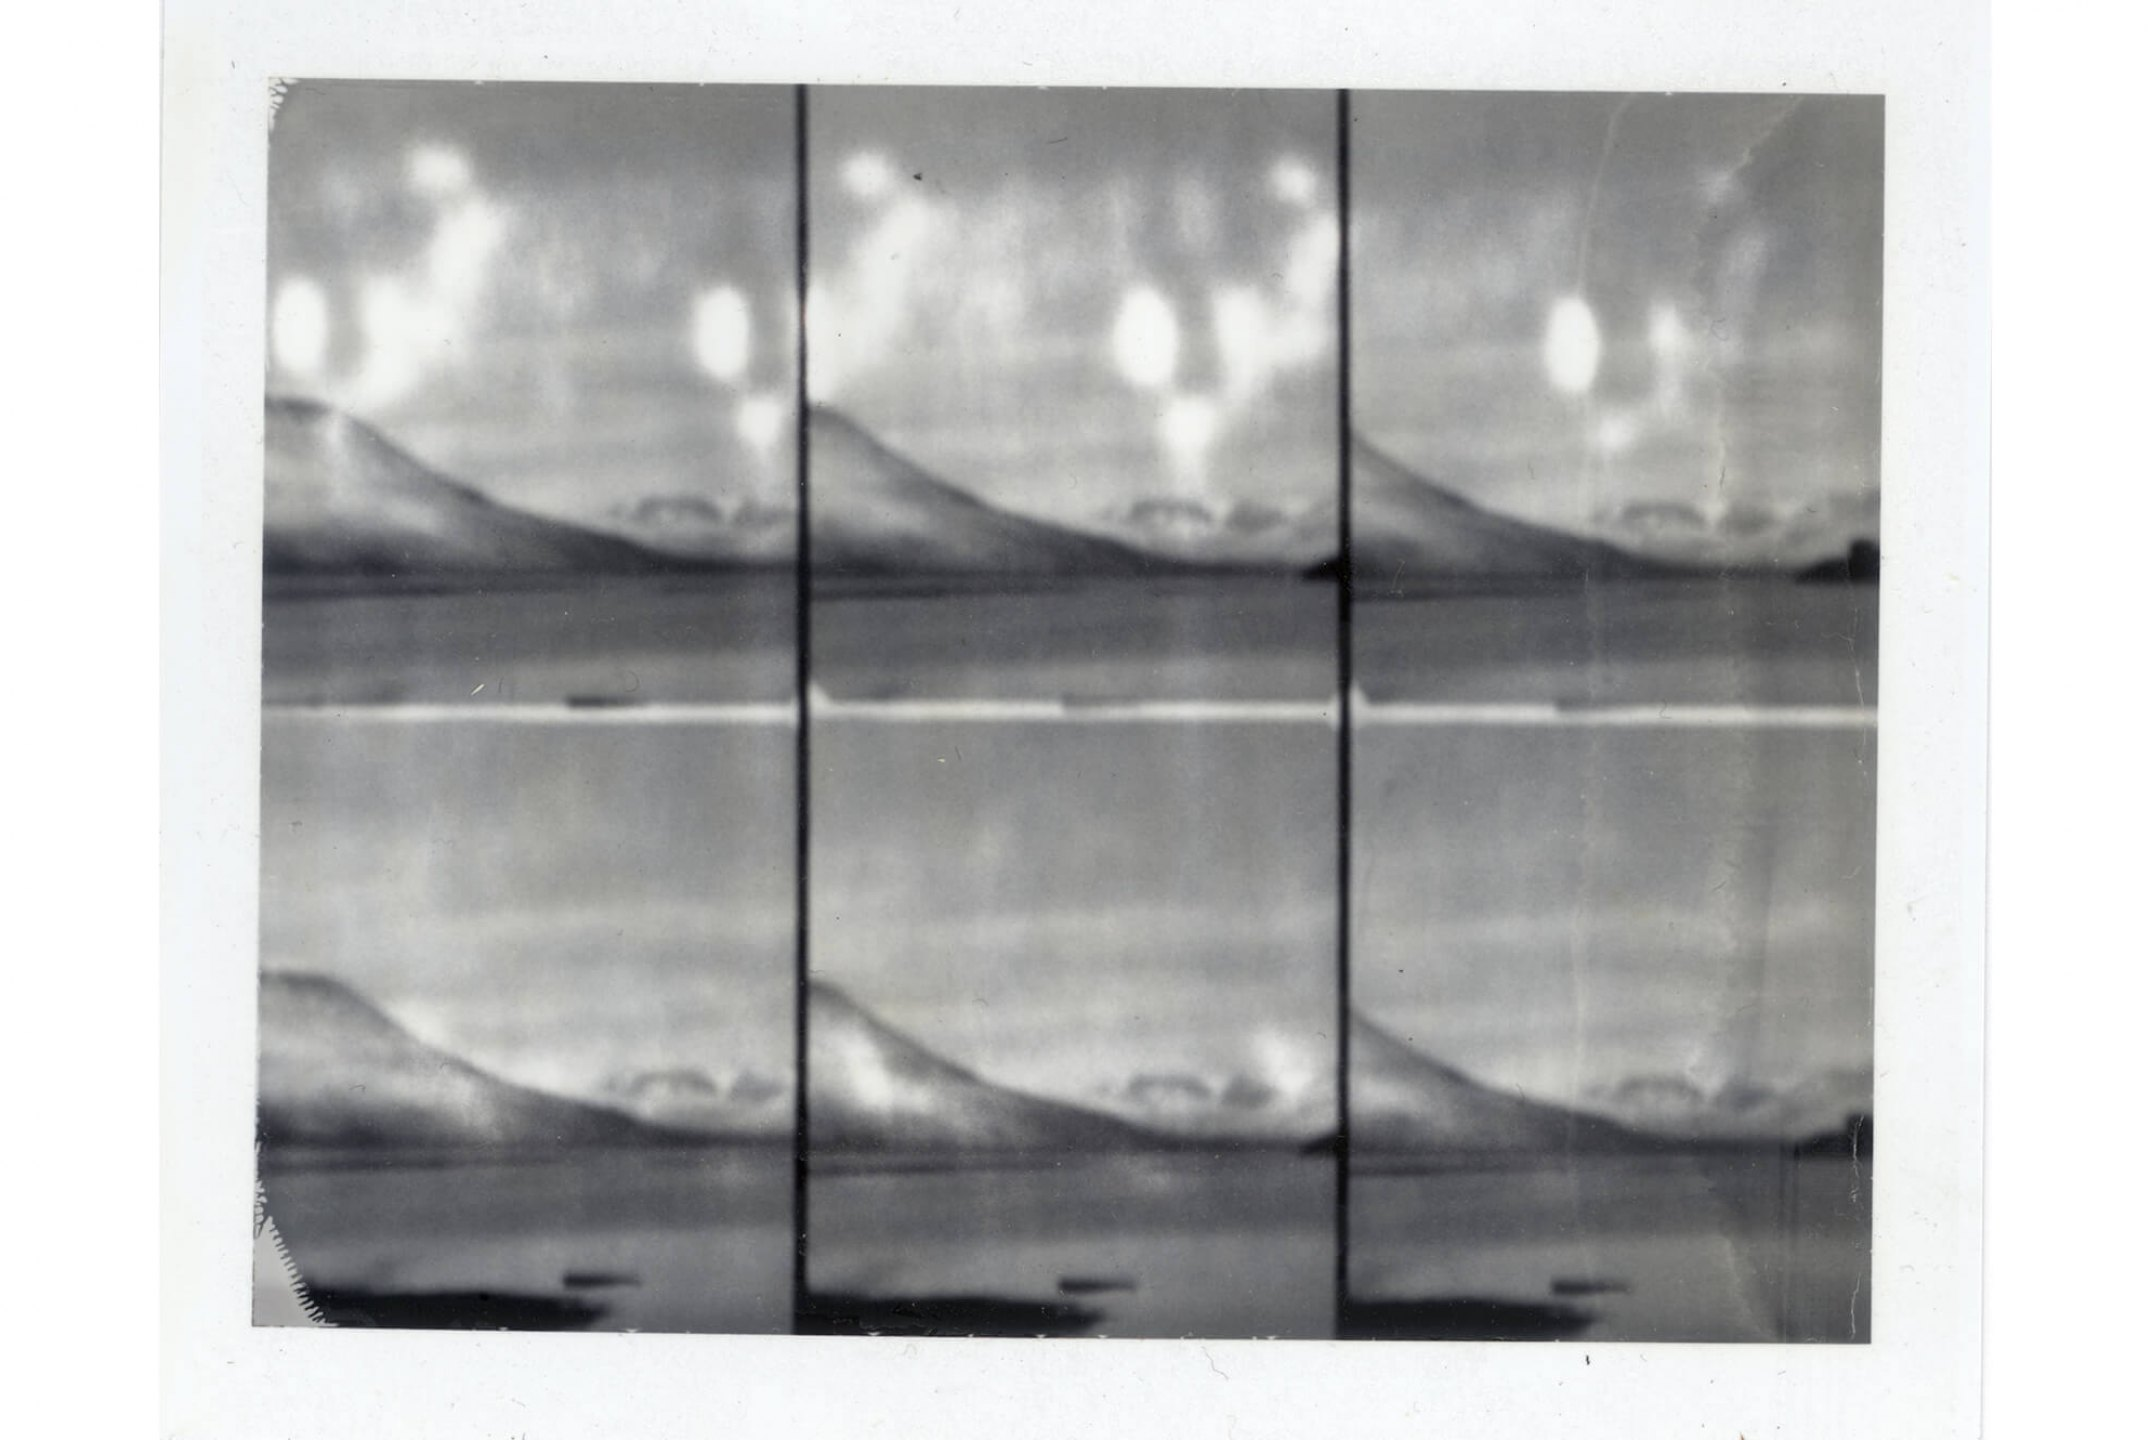 Leticia Ramos, <em>Paleolítico I,</em> 2012, polaroid photography, 10,5 × 8,5 cm - Mendes Wood DM